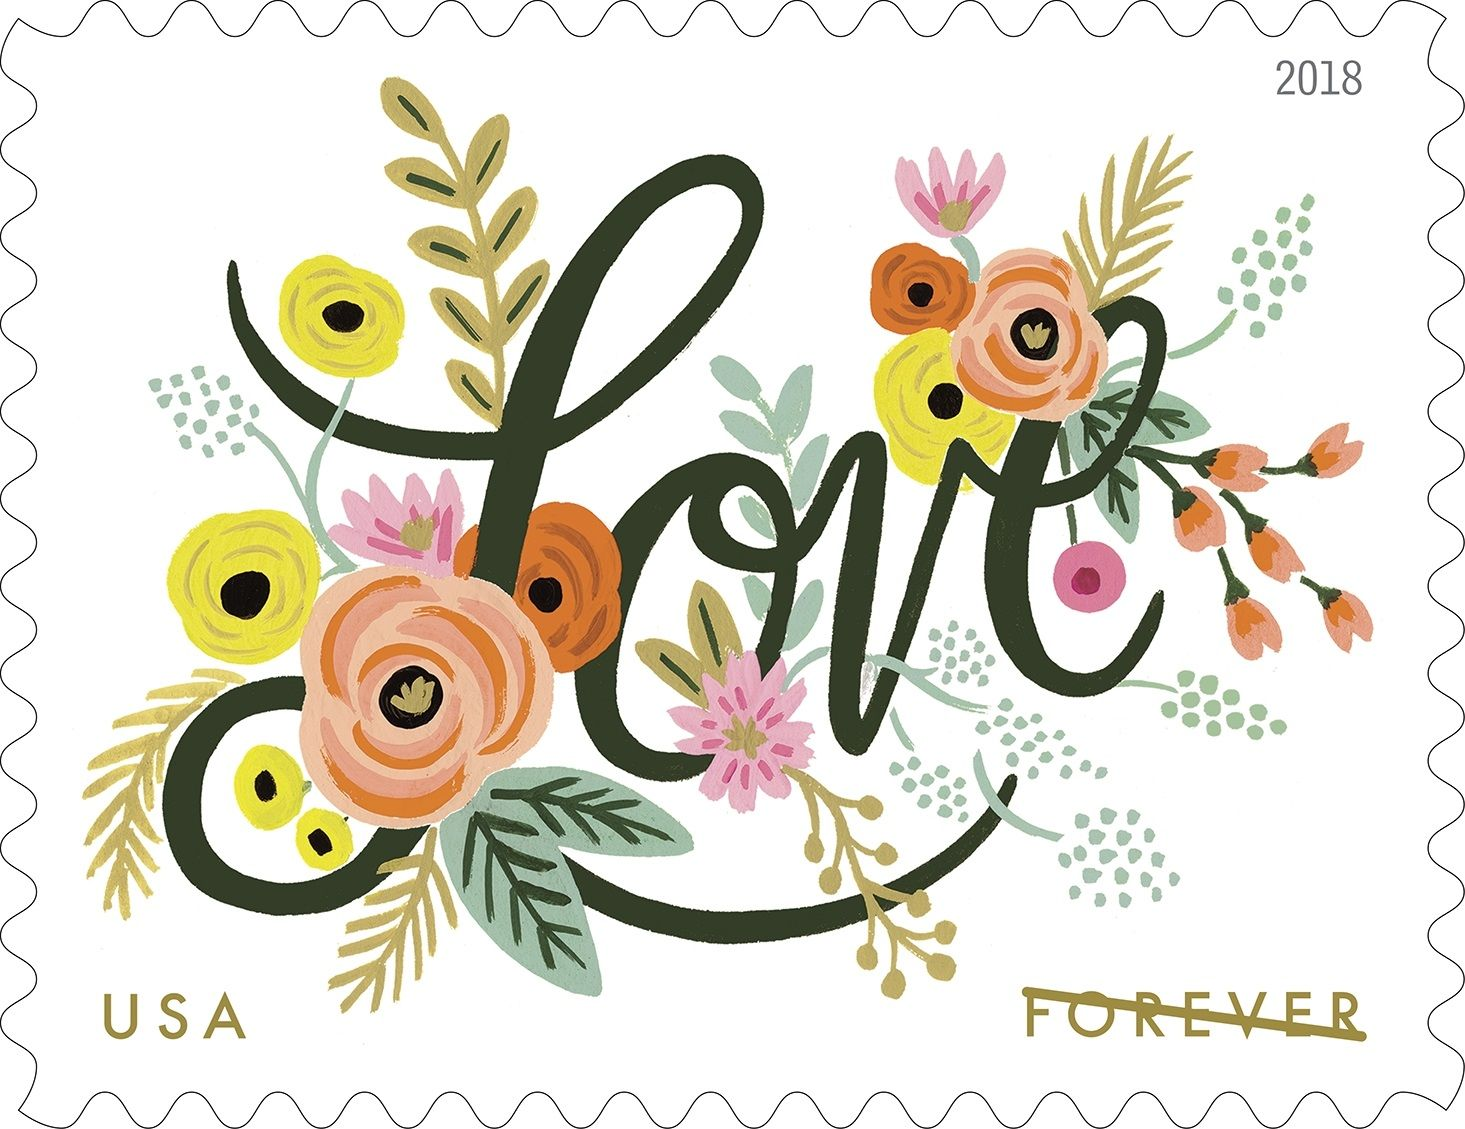 United States Post Office 1 Sheet of 20 Stamps USPS Hearts Blossom Love Forever Stamps 2019